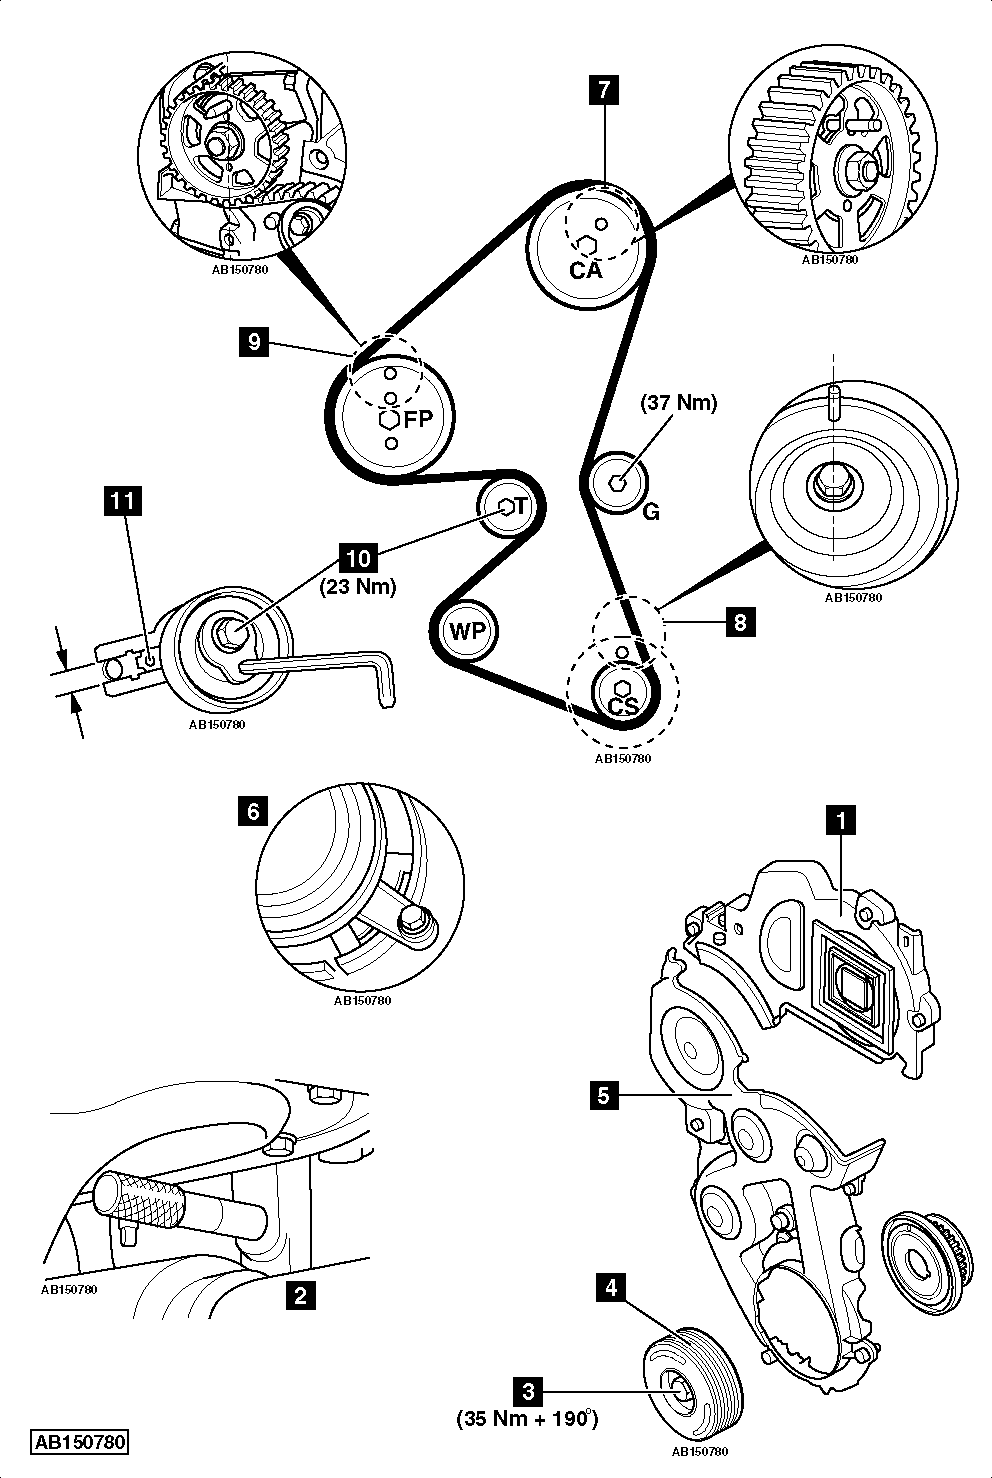 disconnect timing belt from camshaft pulleys